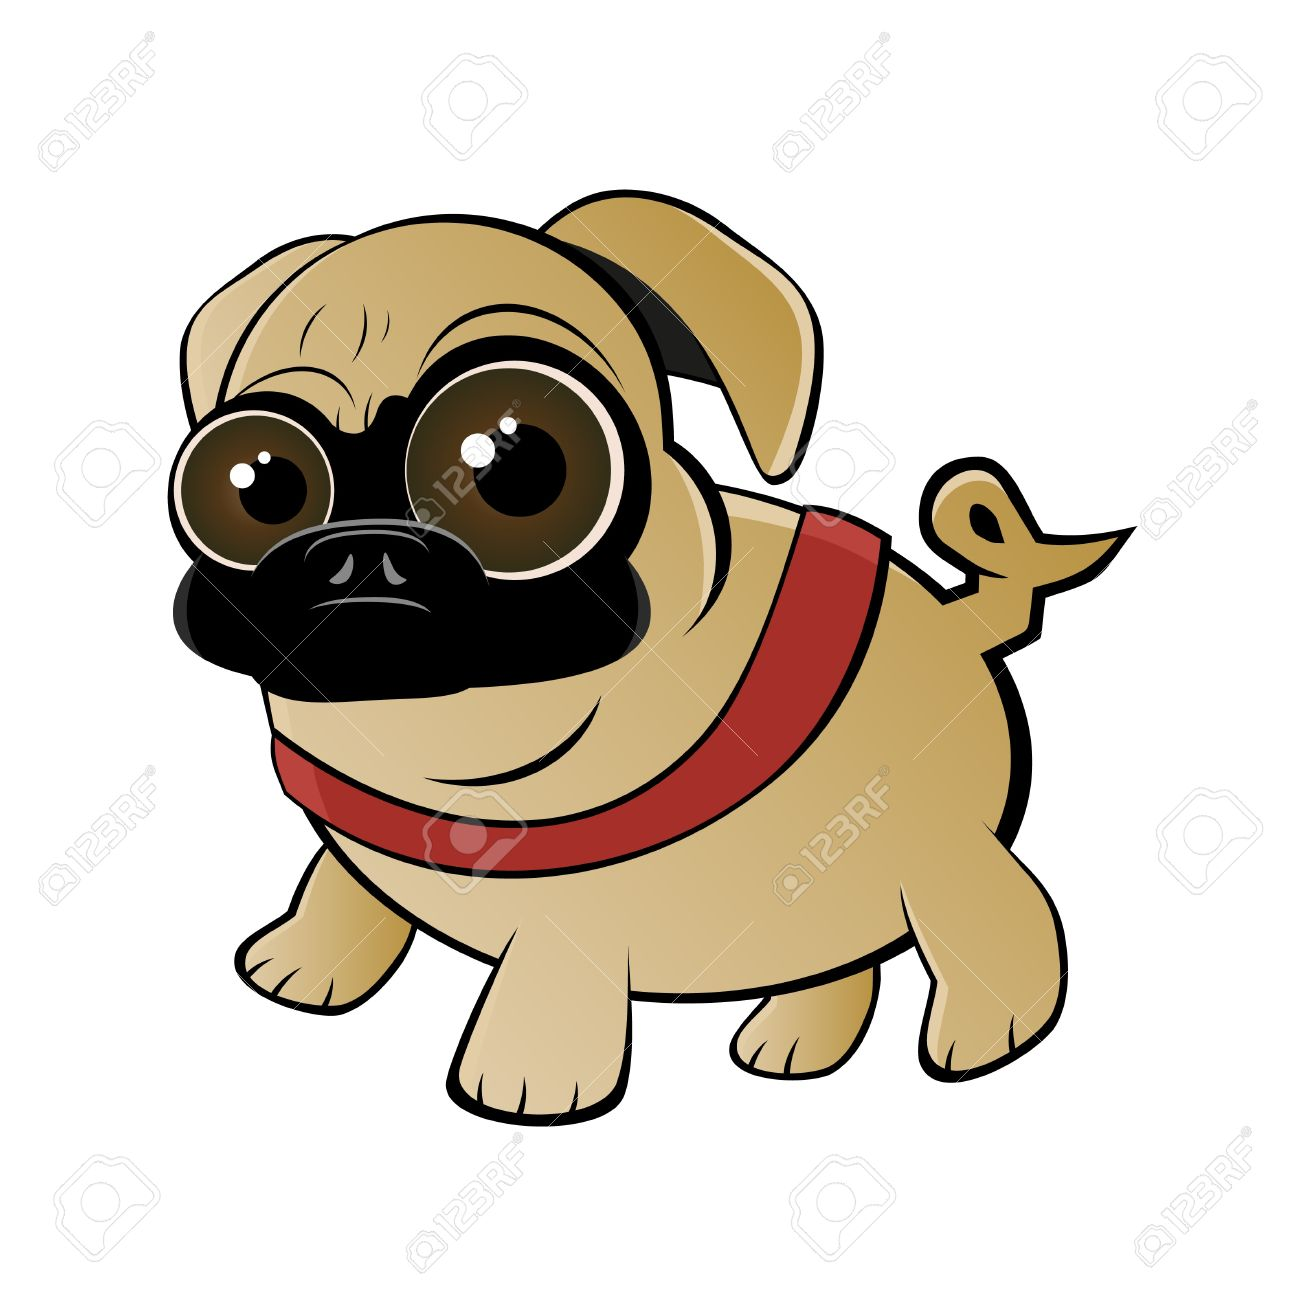 Pug clipart #2, Download drawings